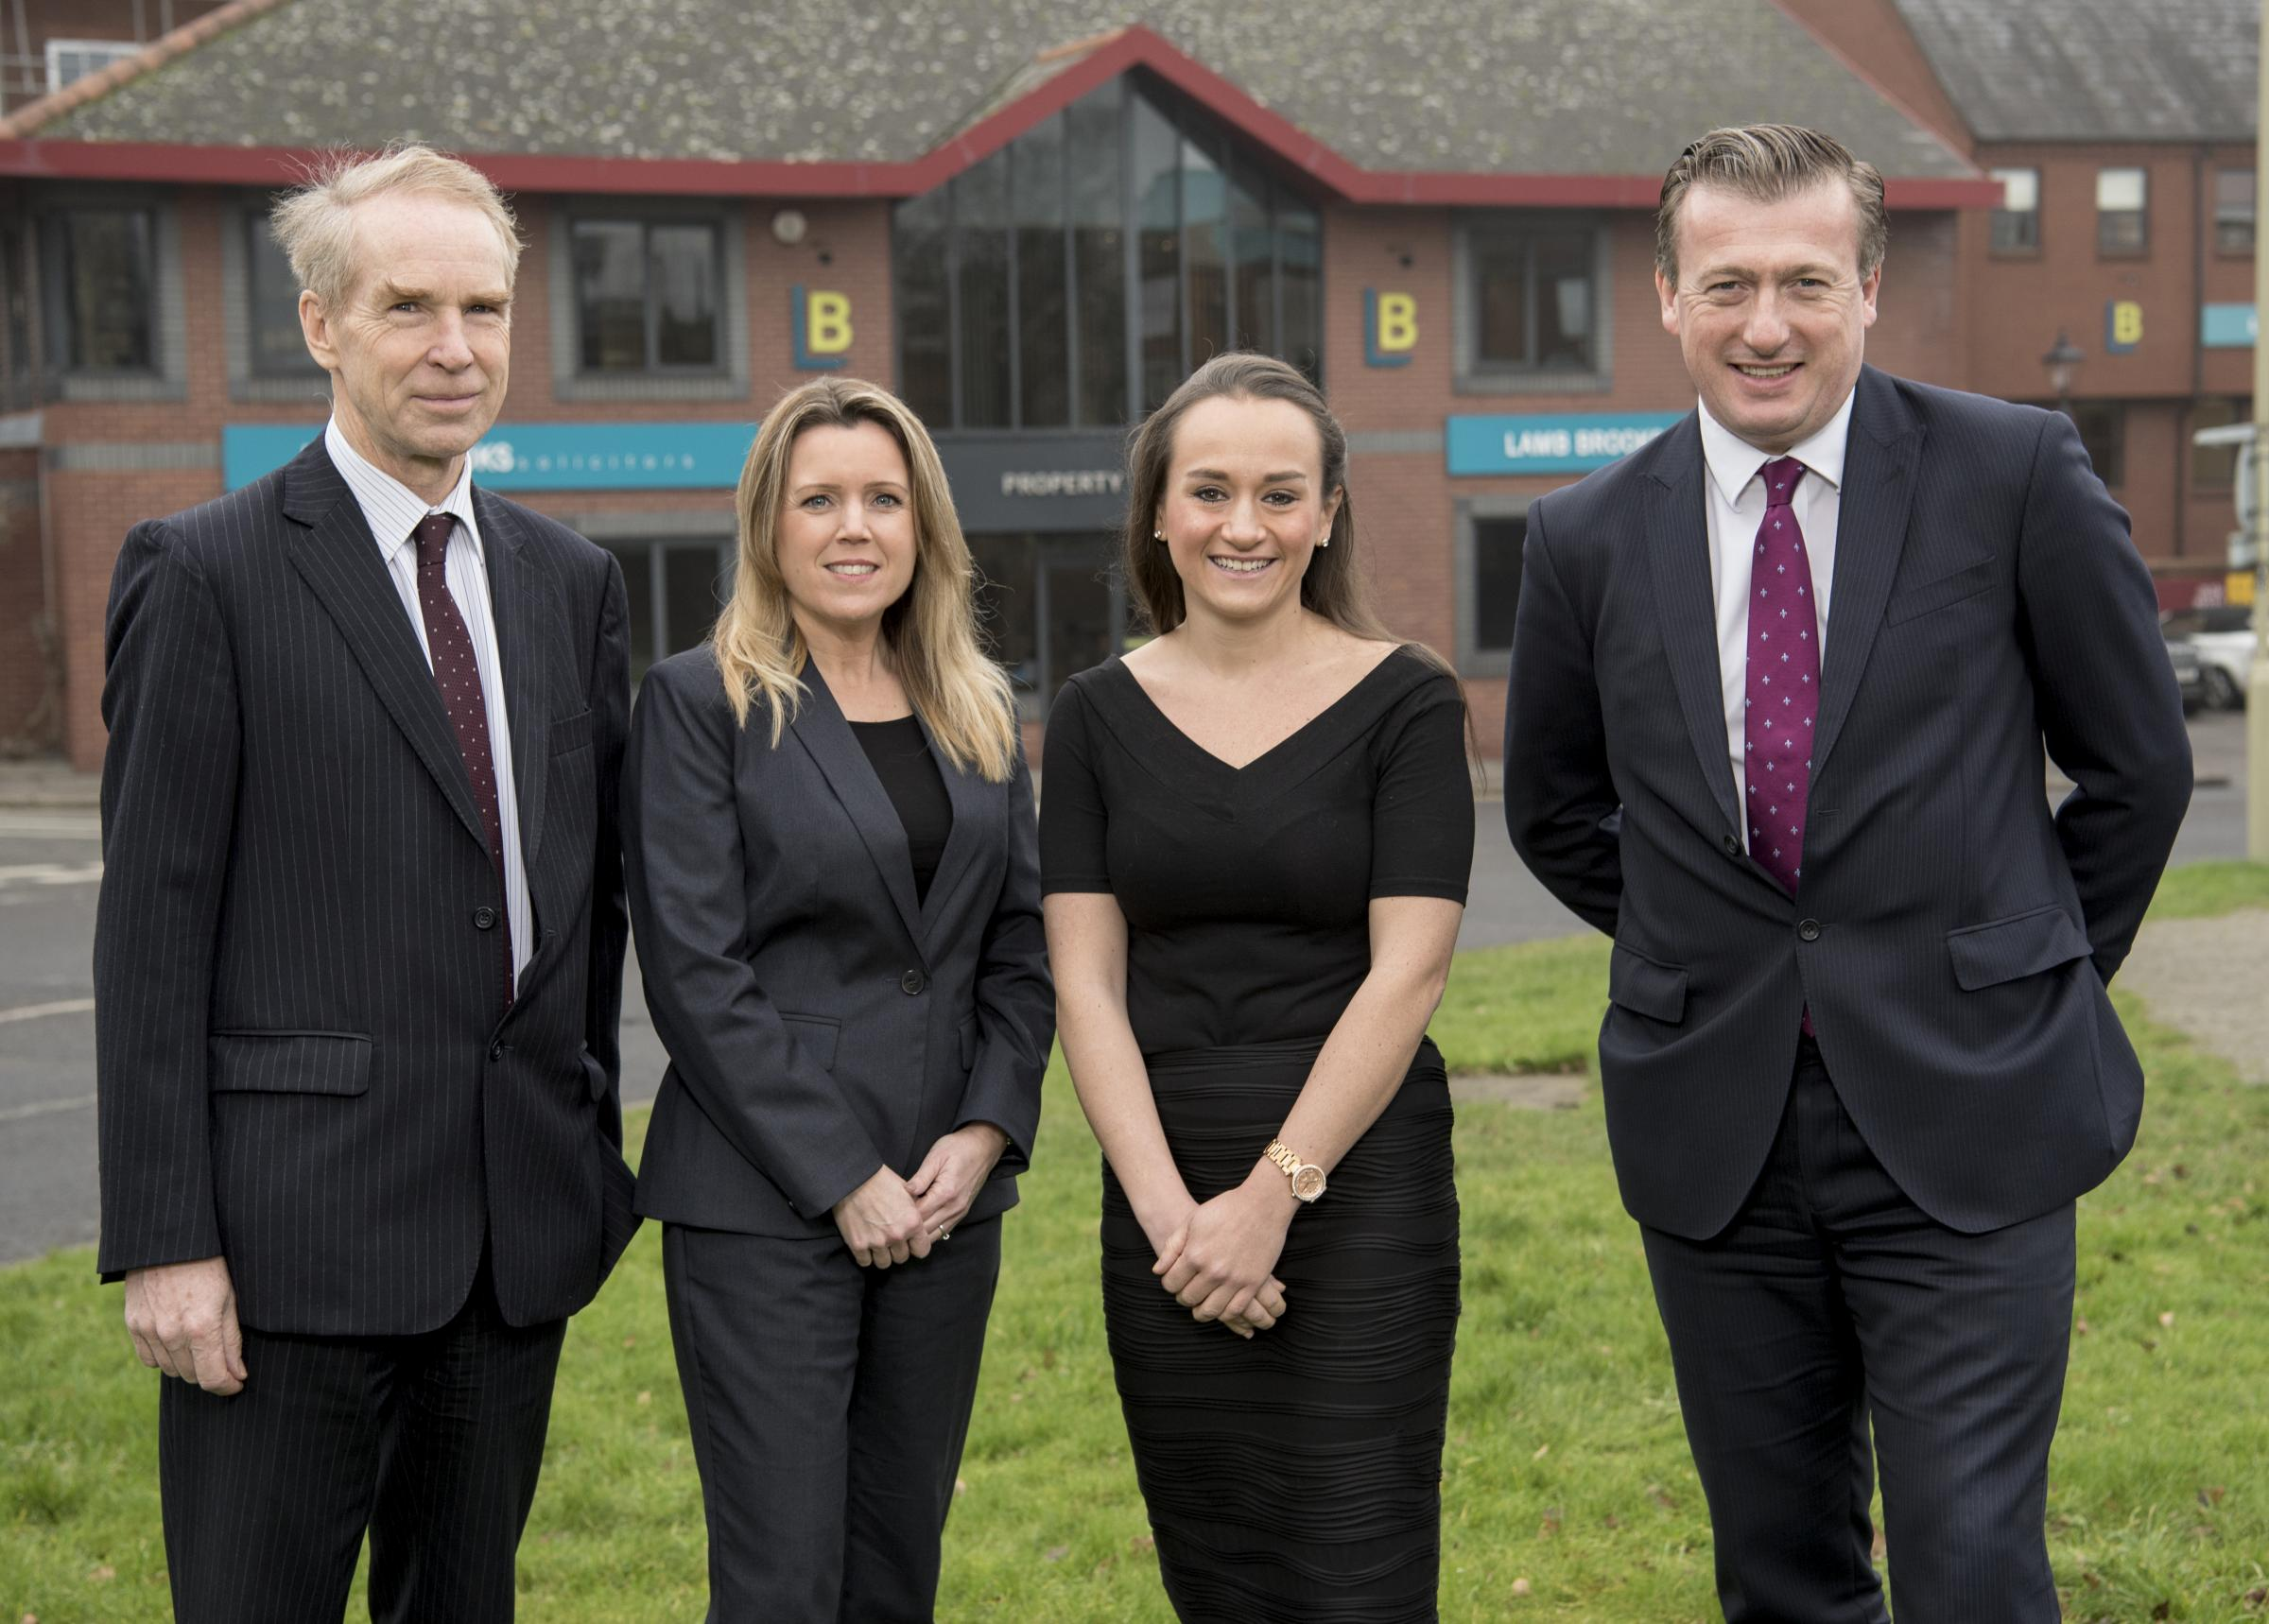 From left, Robert Finlayson, managing partner, Karen Bristow, head of employment, Sophie Keene, solicitor, and Andrew Lowe, managing partner